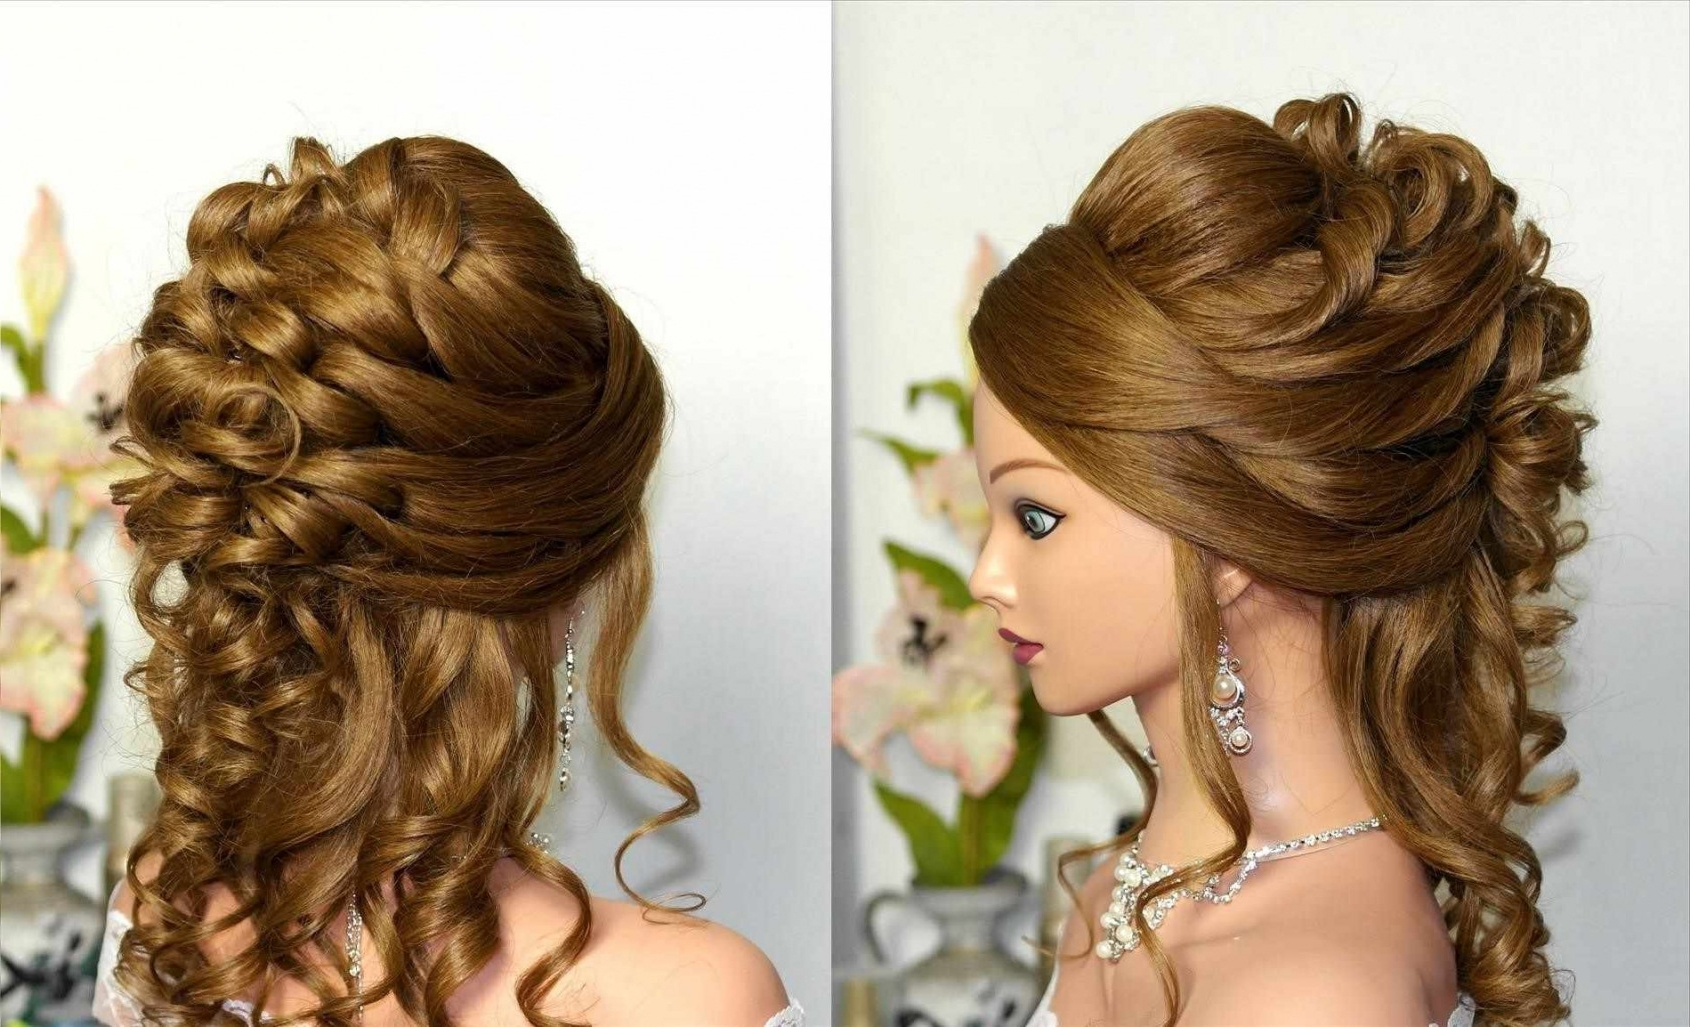 Trendy Wedding Hairstyles For Long Thick Curly Hair Intended For Best Wedding Hairstyles For Long Thick Hair Impressive Updos Curly (View 11 of 15)